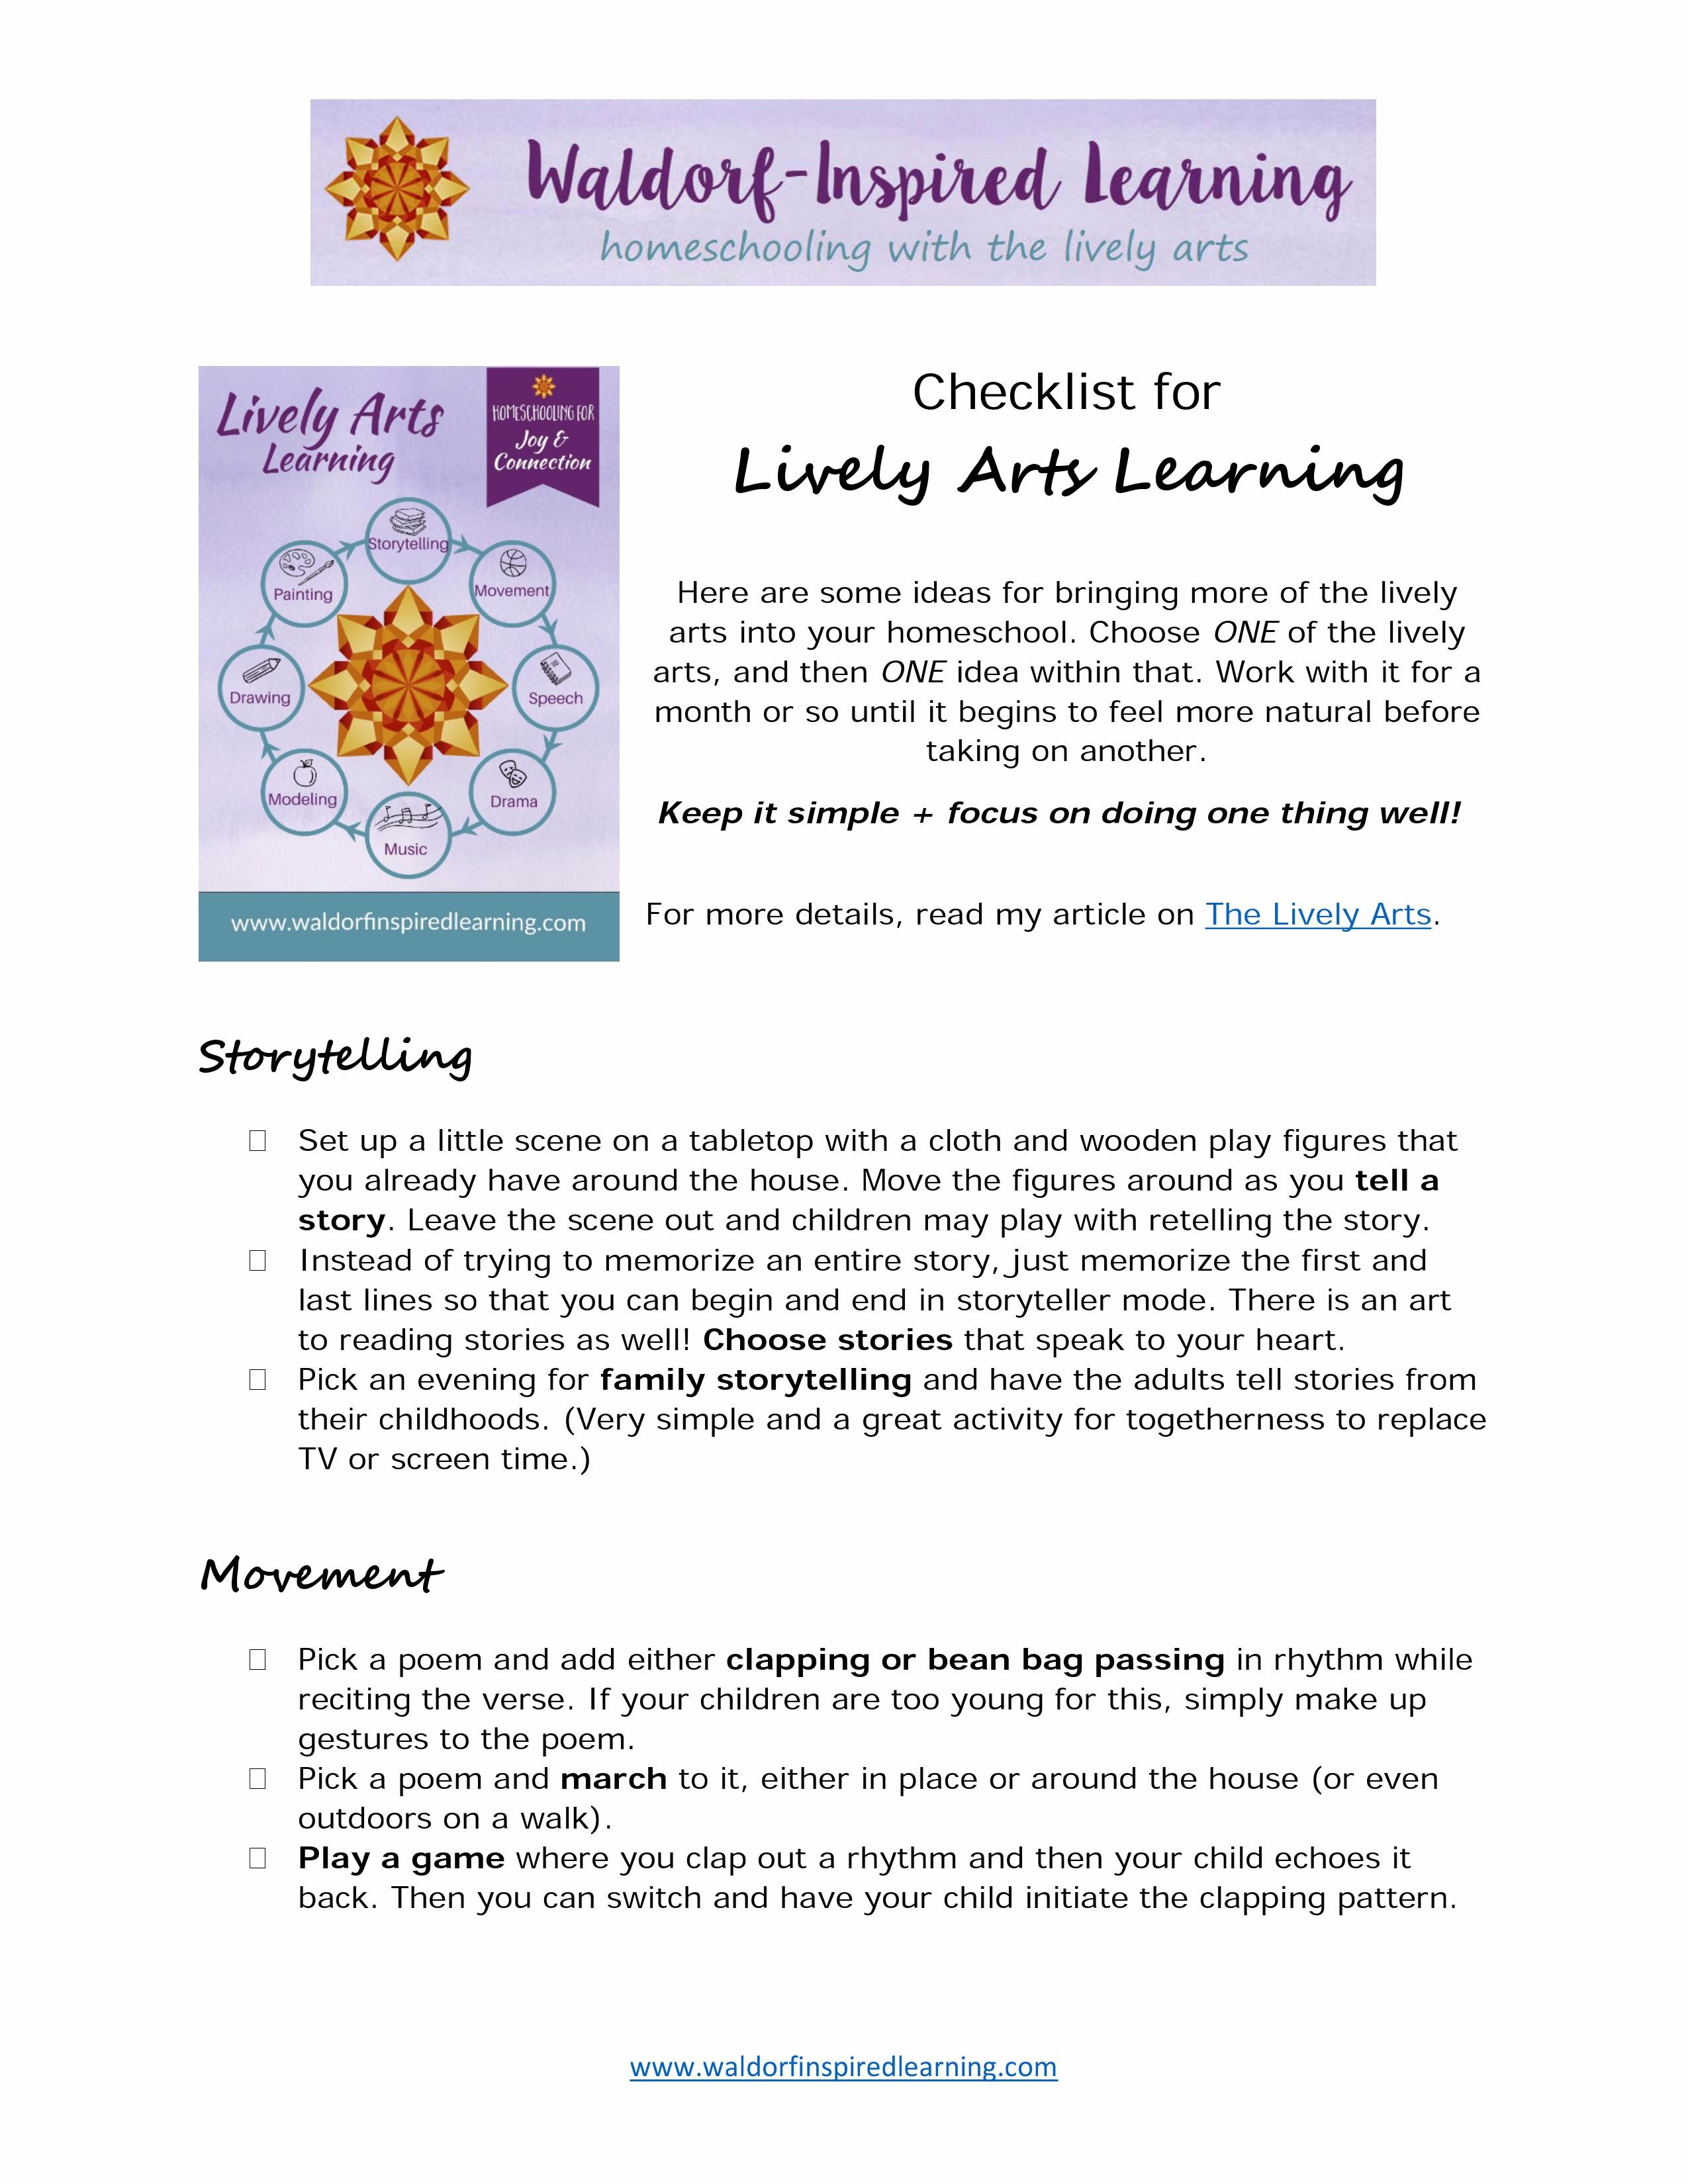 Resources for waldorf homeschooling waldorf inspired learning get your checklist for homeschooling with the lively arts plus weekly support encouragement for your waldorf homeschooling journey fandeluxe Choice Image